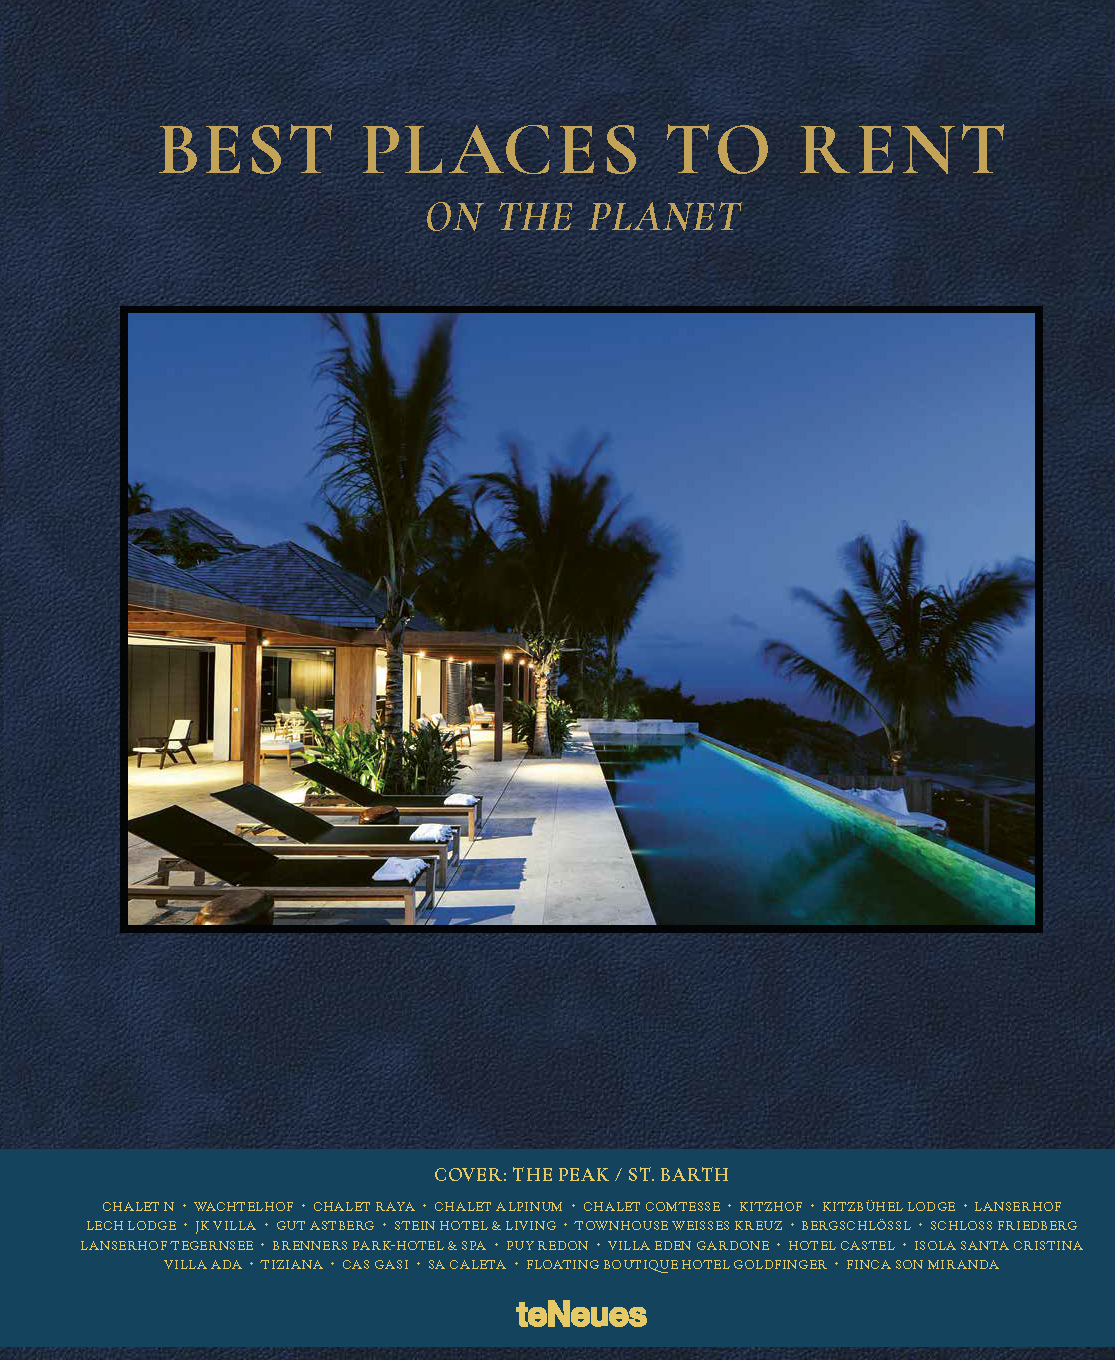 Best Places to Rent